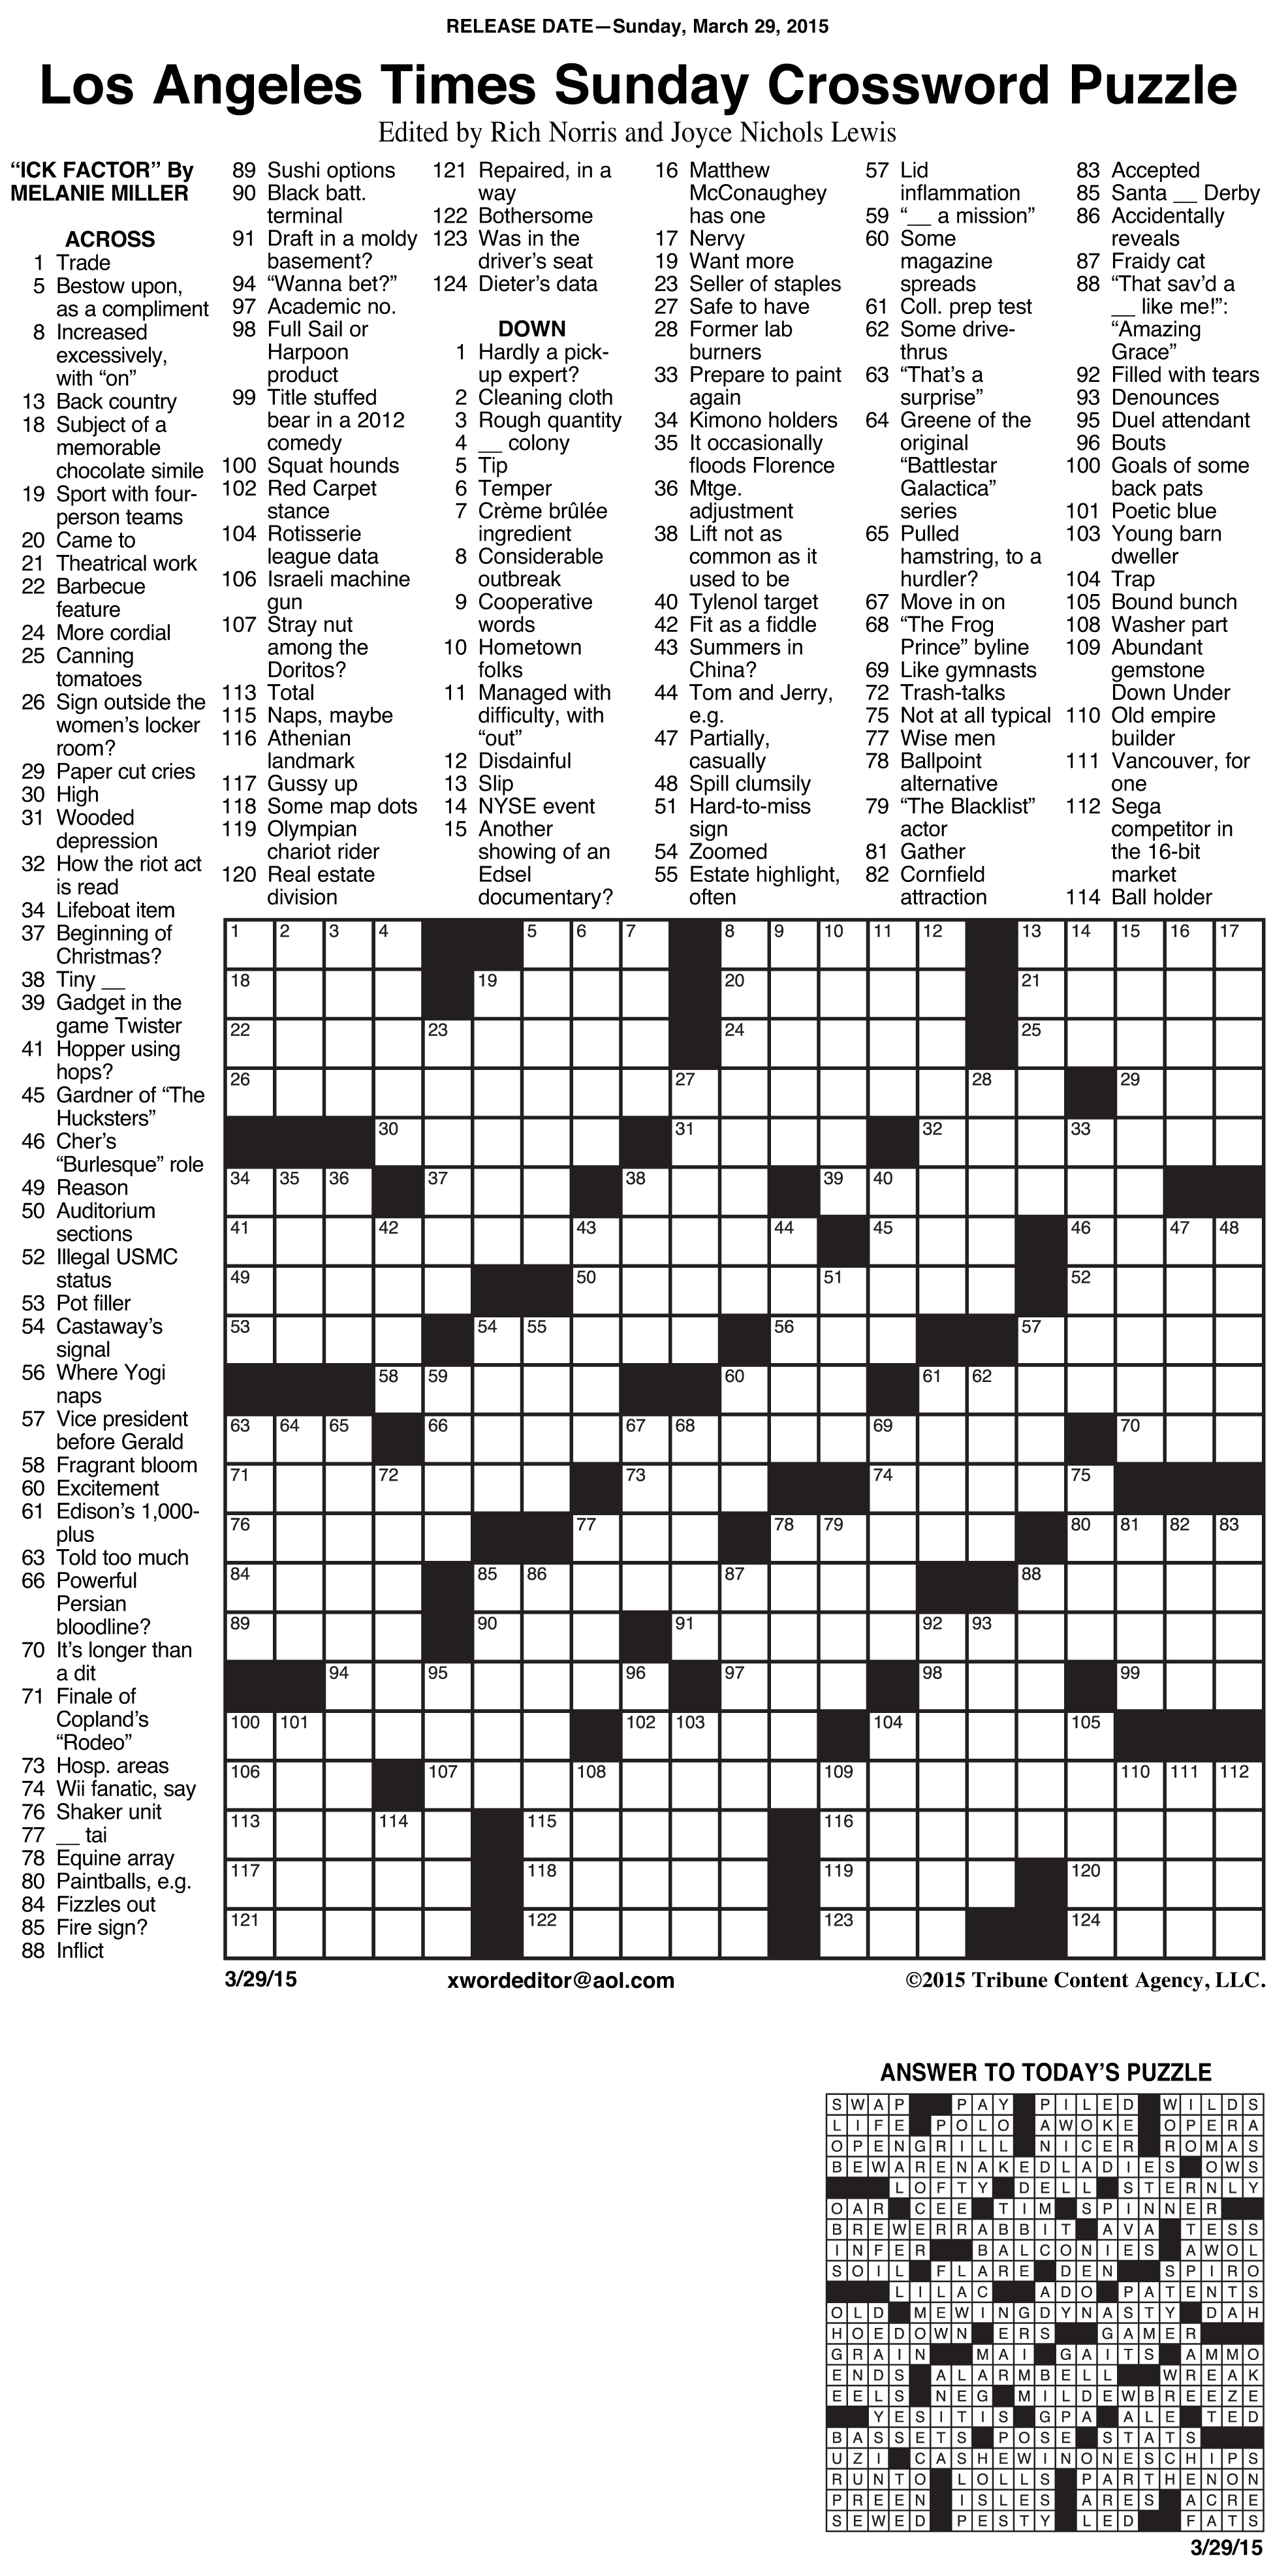 Sample Of Los Angeles Times Sunday Crossword Puzzle | Tribune - Printable Crossword Puzzles 1978